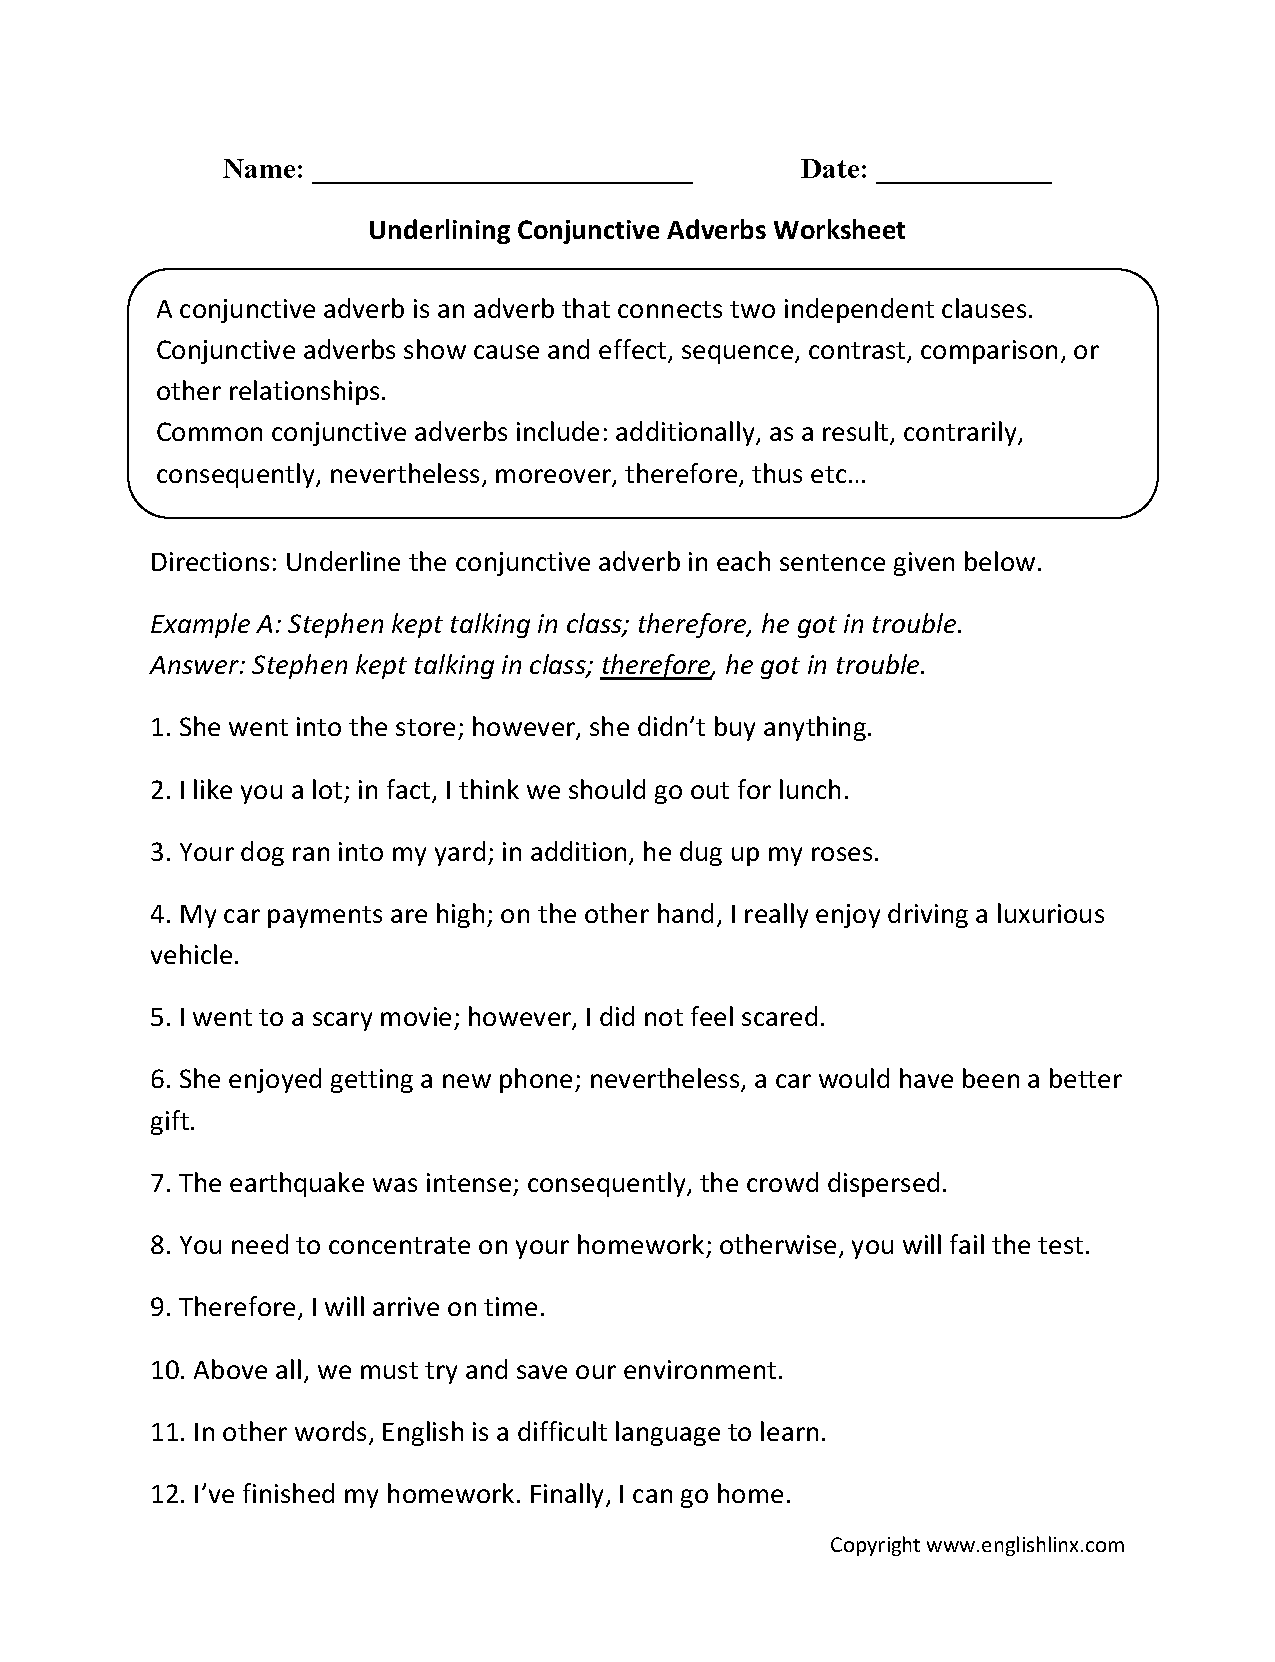 Weirdmailus  Marvelous Englishlinxcom  Conjunctions Worksheets With Great Worksheet With Easy On The Eye Picture Sequence Worksheets Also Eating Disorders Worksheets In Addition Worksheets On Place Value And Appositive Phrases Worksheets As Well As Graphing Acceleration Worksheet Additionally Esl Worksheets Free From Englishlinxcom With Weirdmailus  Great Englishlinxcom  Conjunctions Worksheets With Easy On The Eye Worksheet And Marvelous Picture Sequence Worksheets Also Eating Disorders Worksheets In Addition Worksheets On Place Value From Englishlinxcom